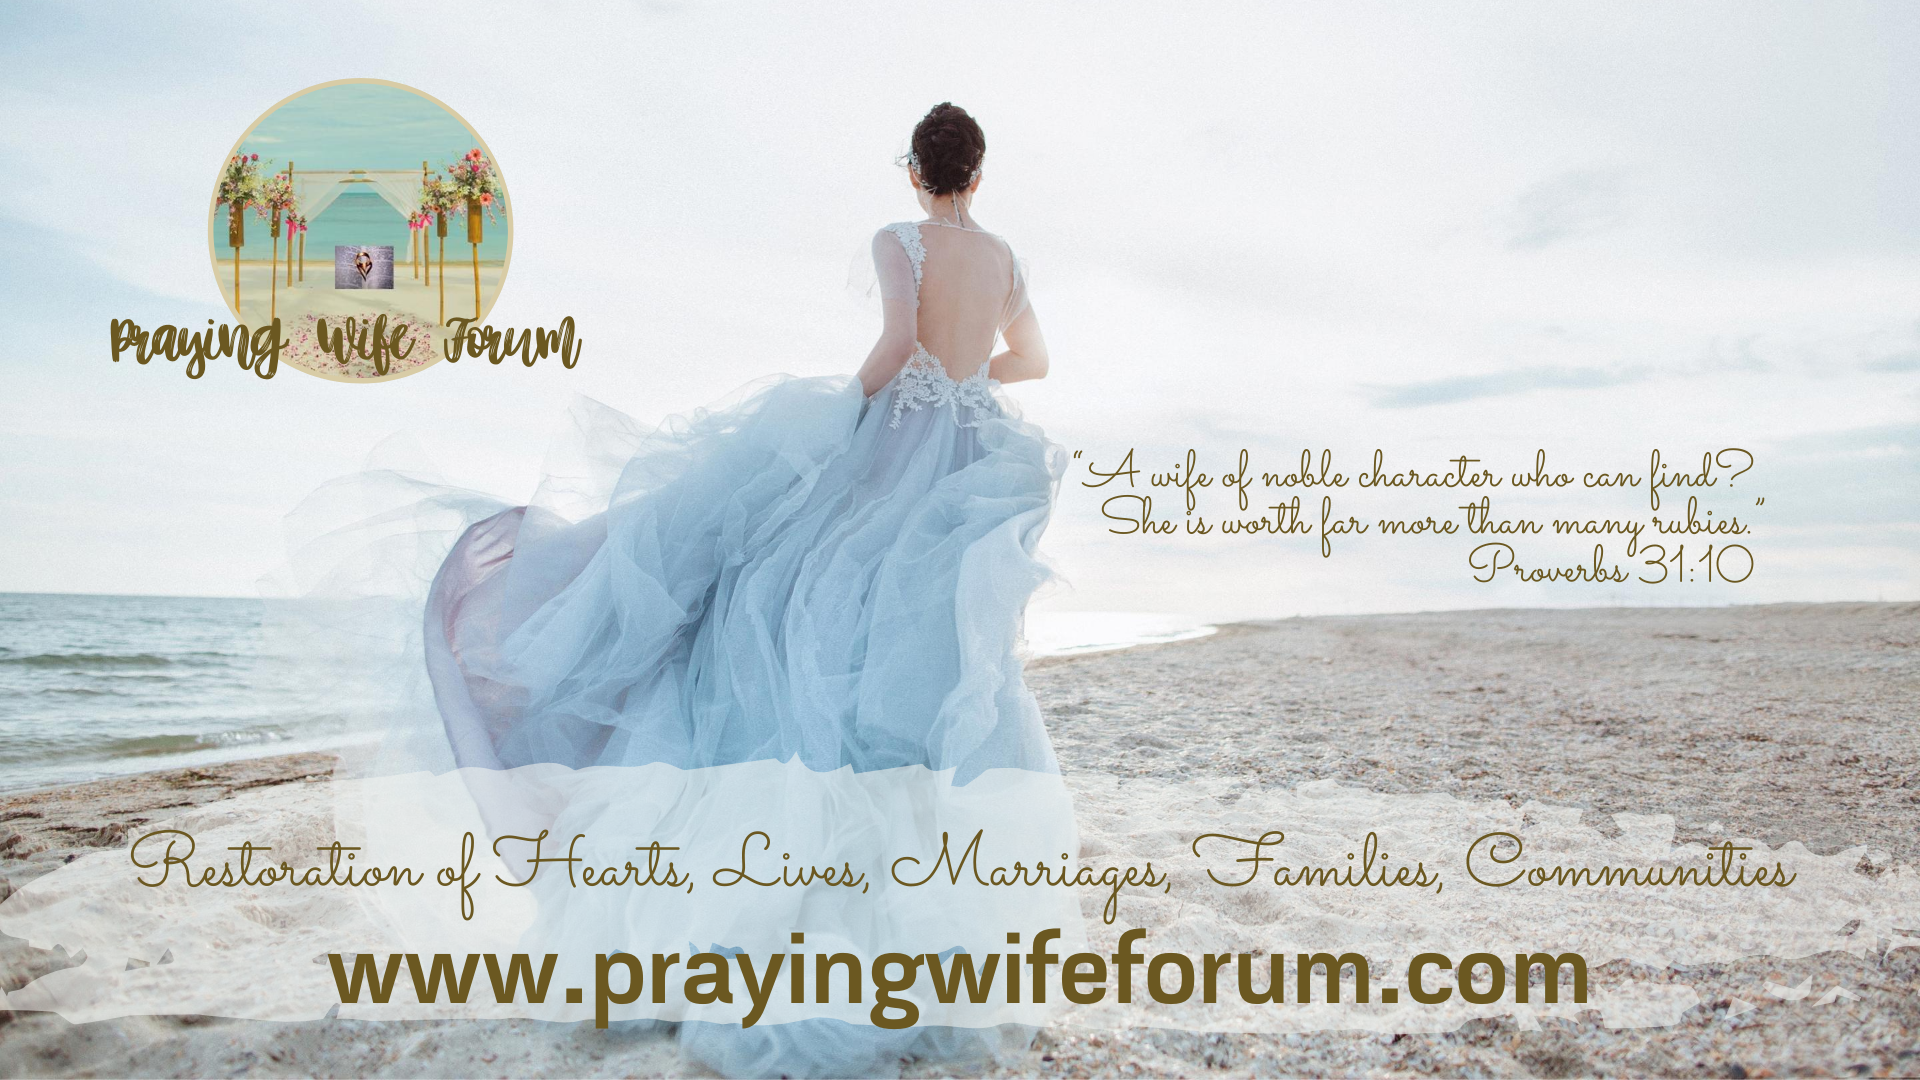 Praying W.I.F.E. Forum